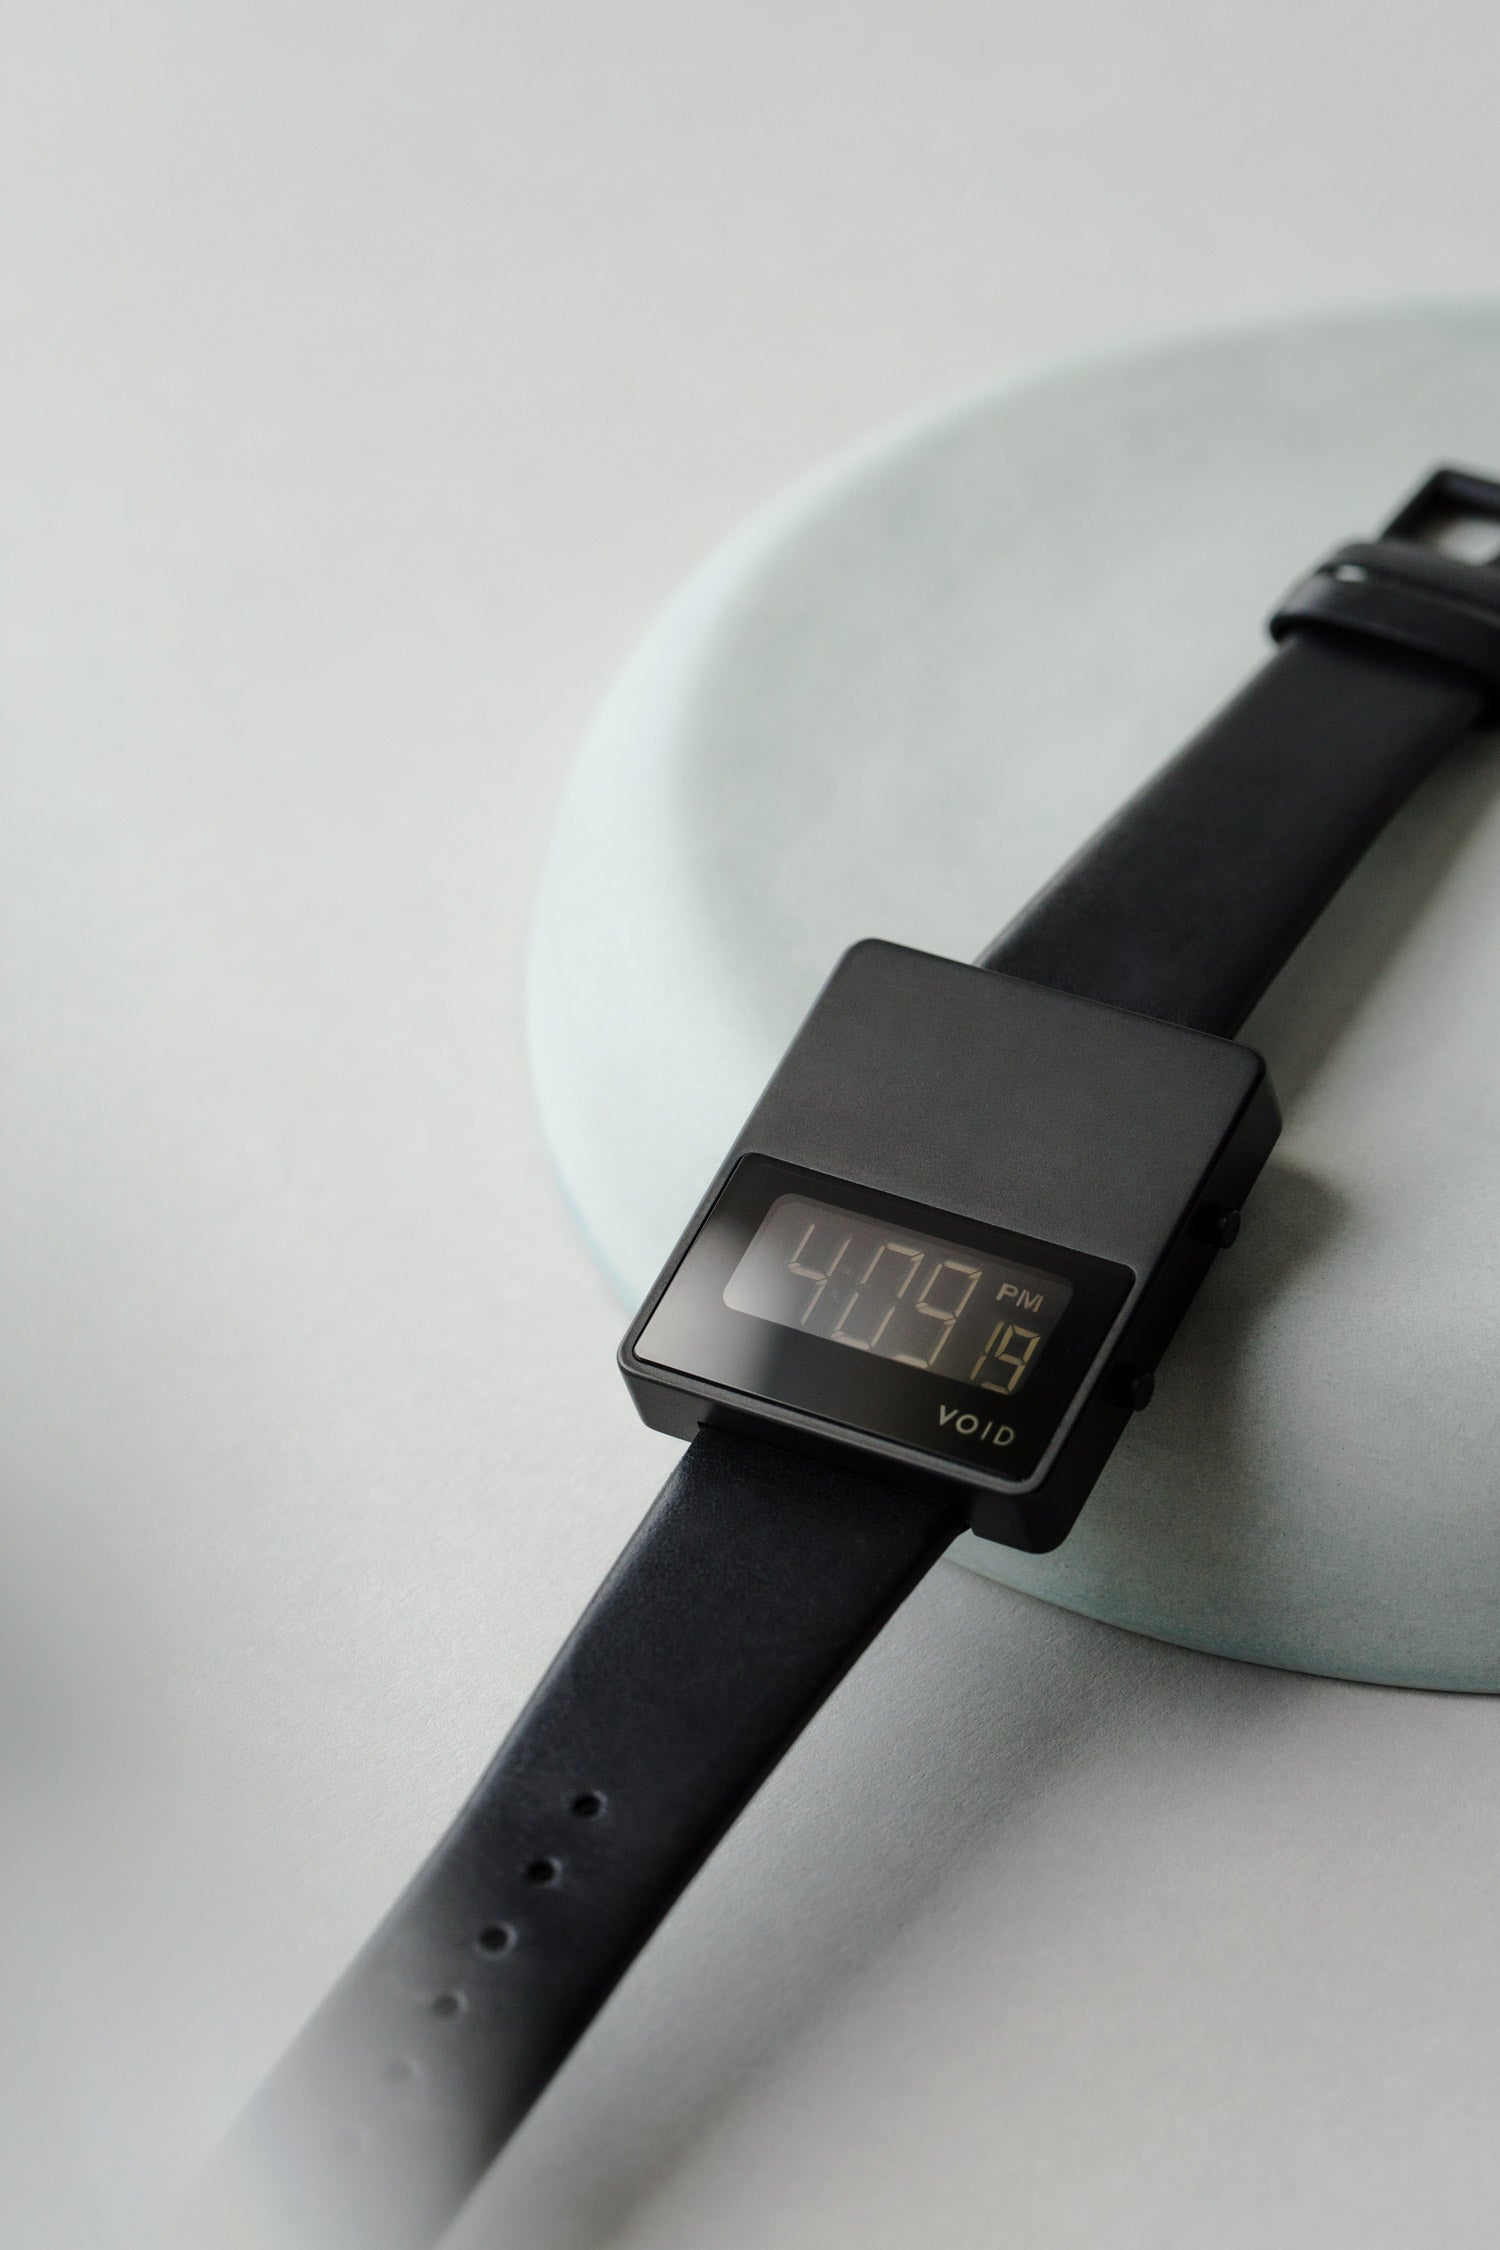 VOID Watches's iconic square watch, the V01MKII by Swedish Designer David Ericsson